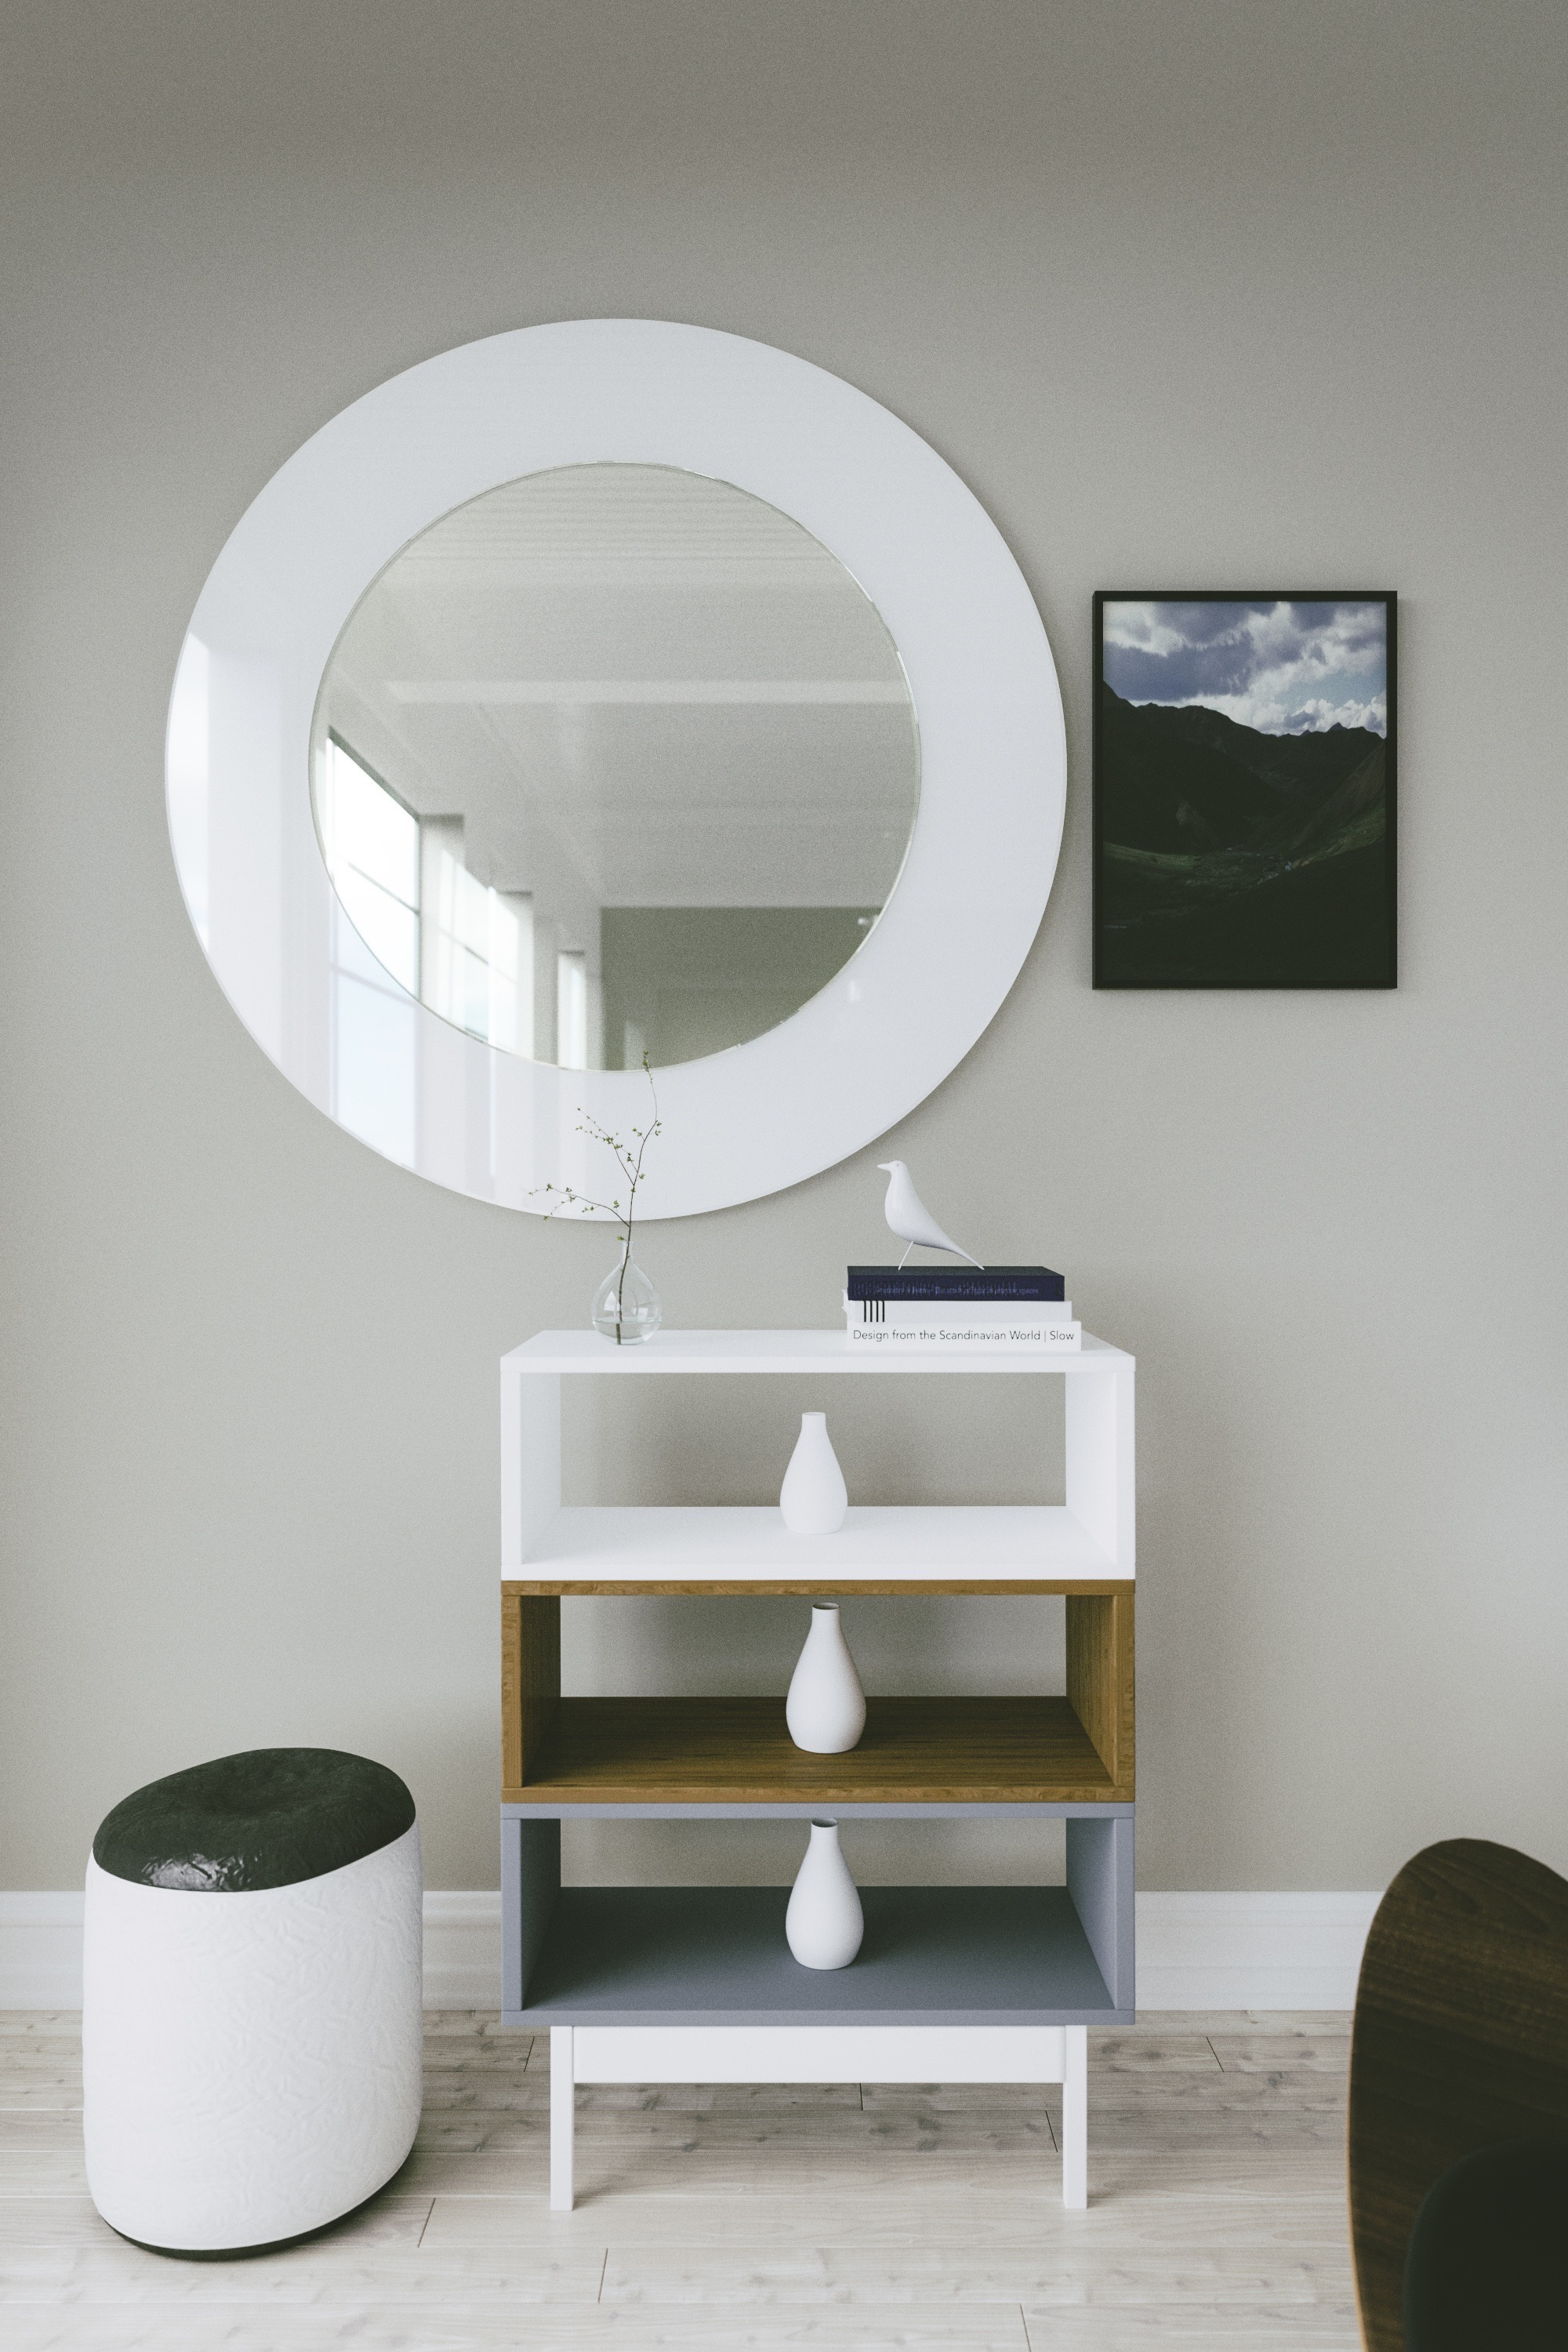 White Mirror photographed in situation